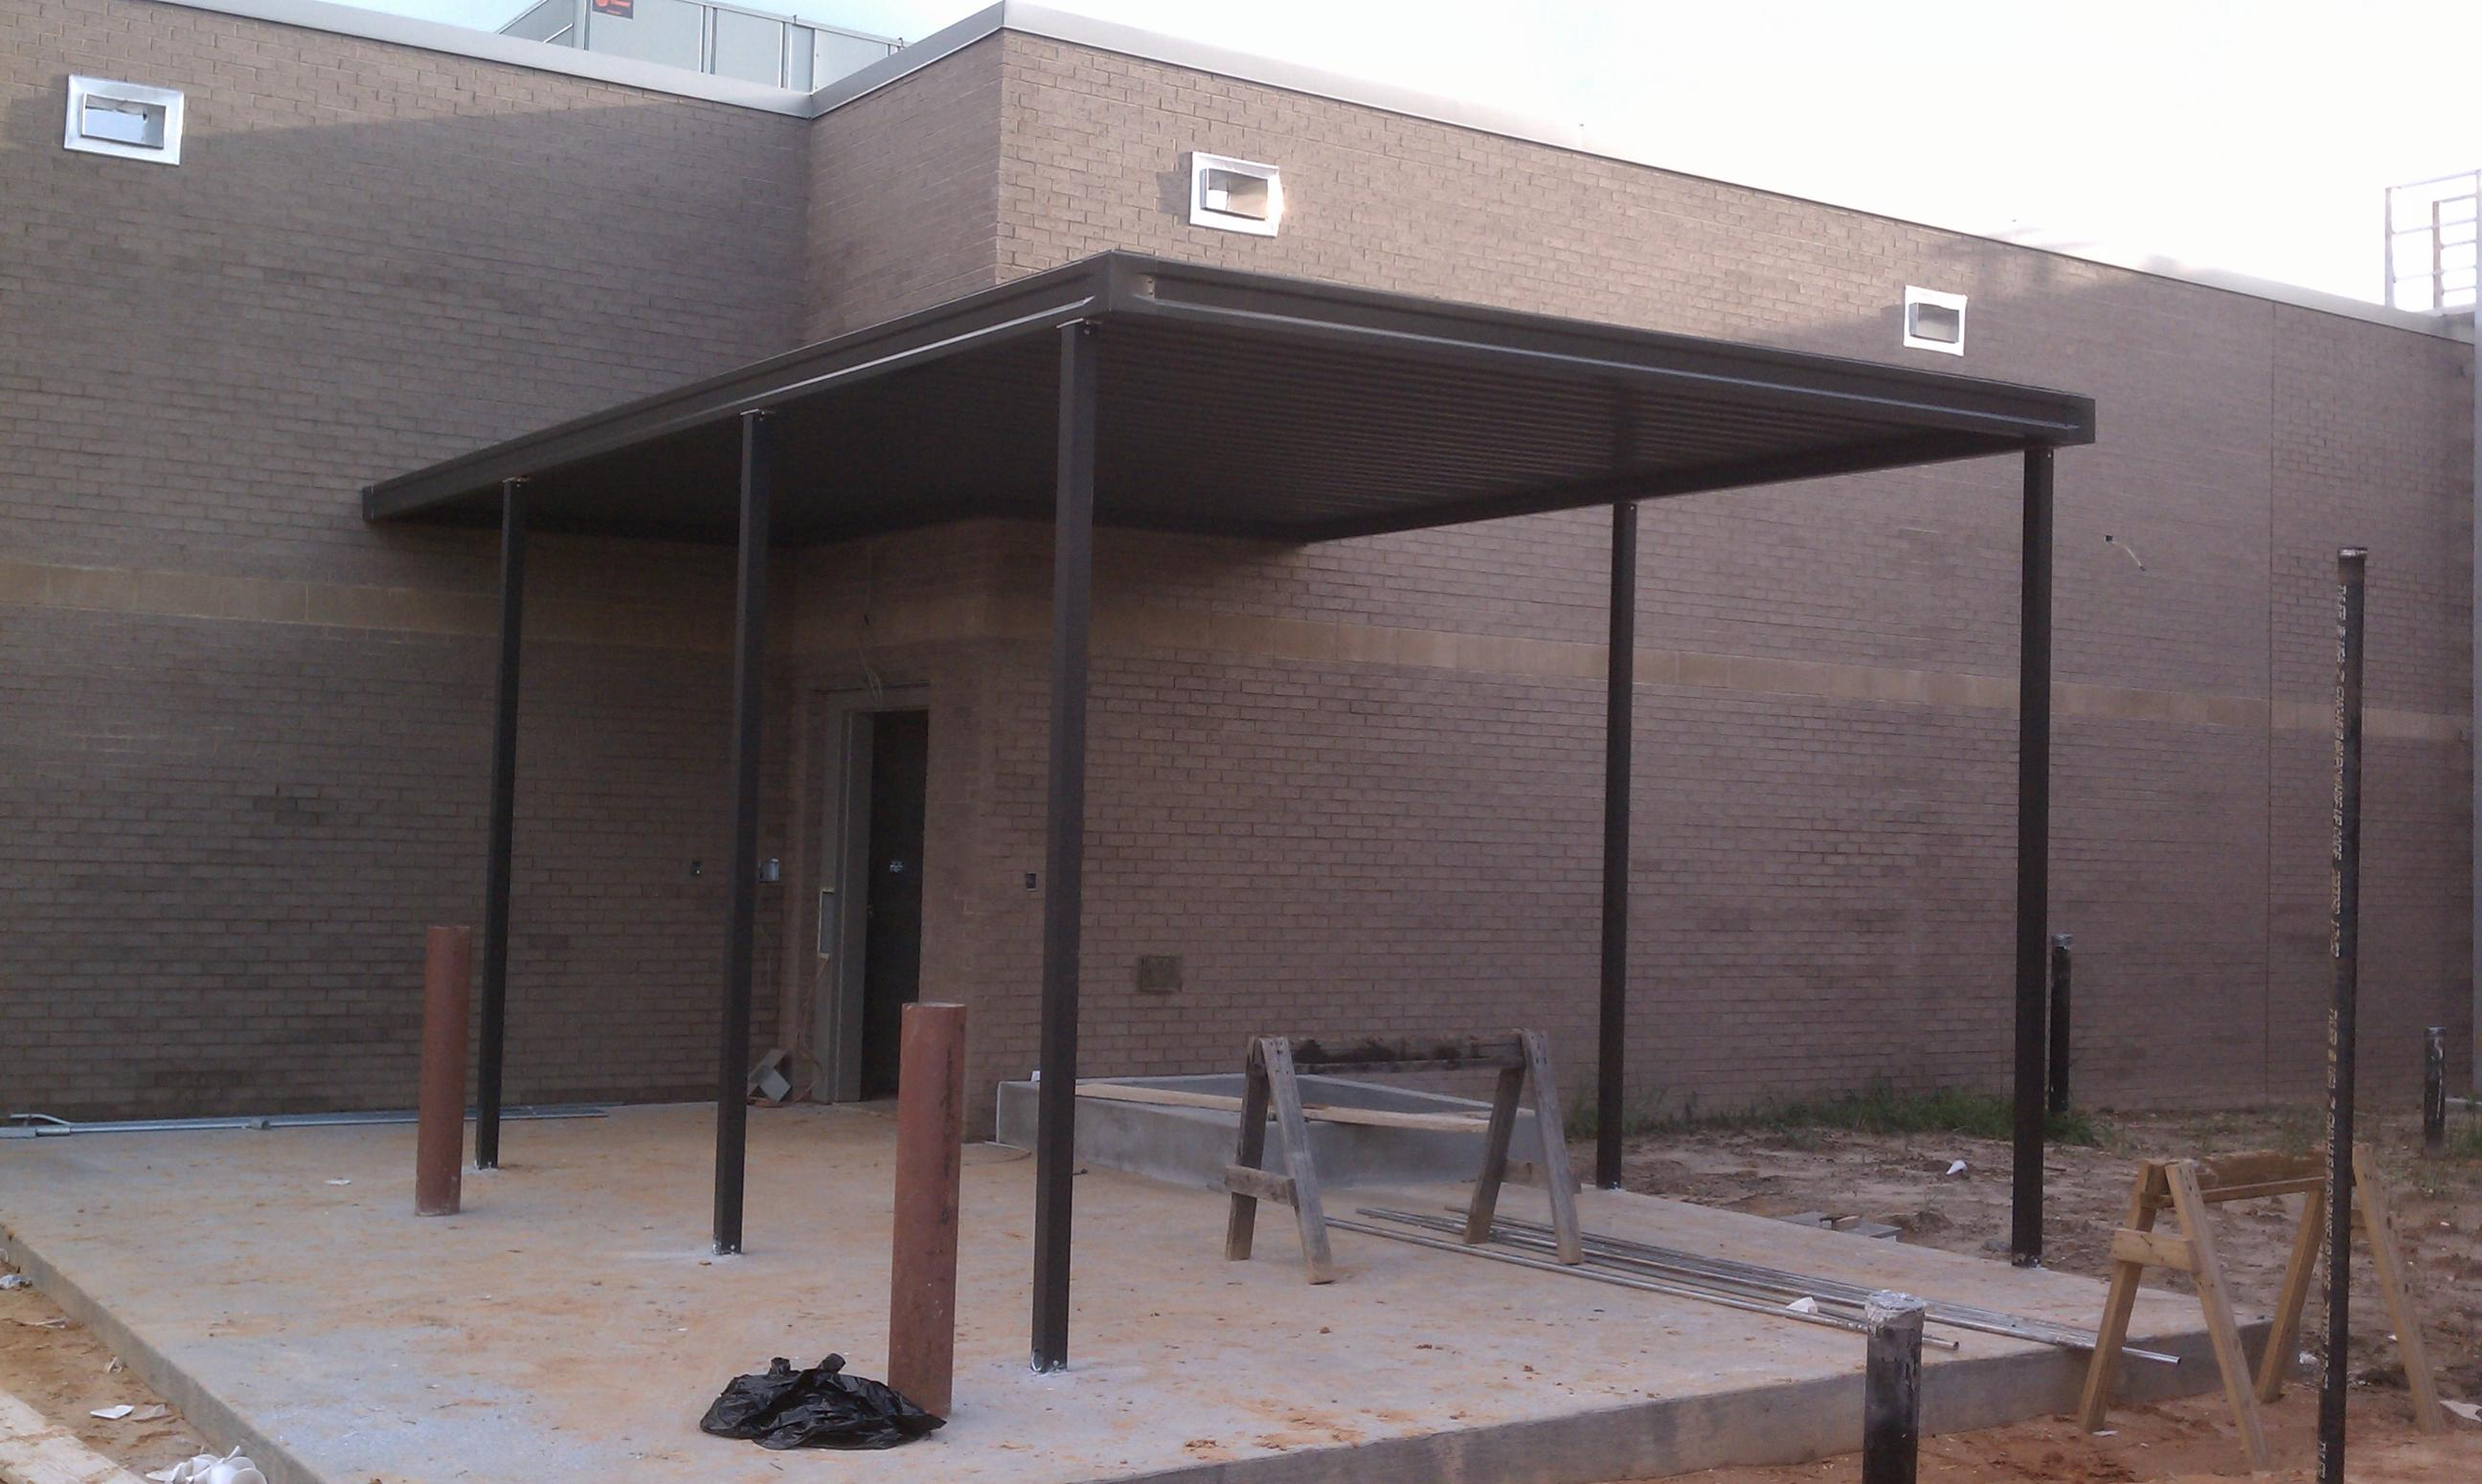 Extruded Canopies Justice Center Hattiesburg MS (2)